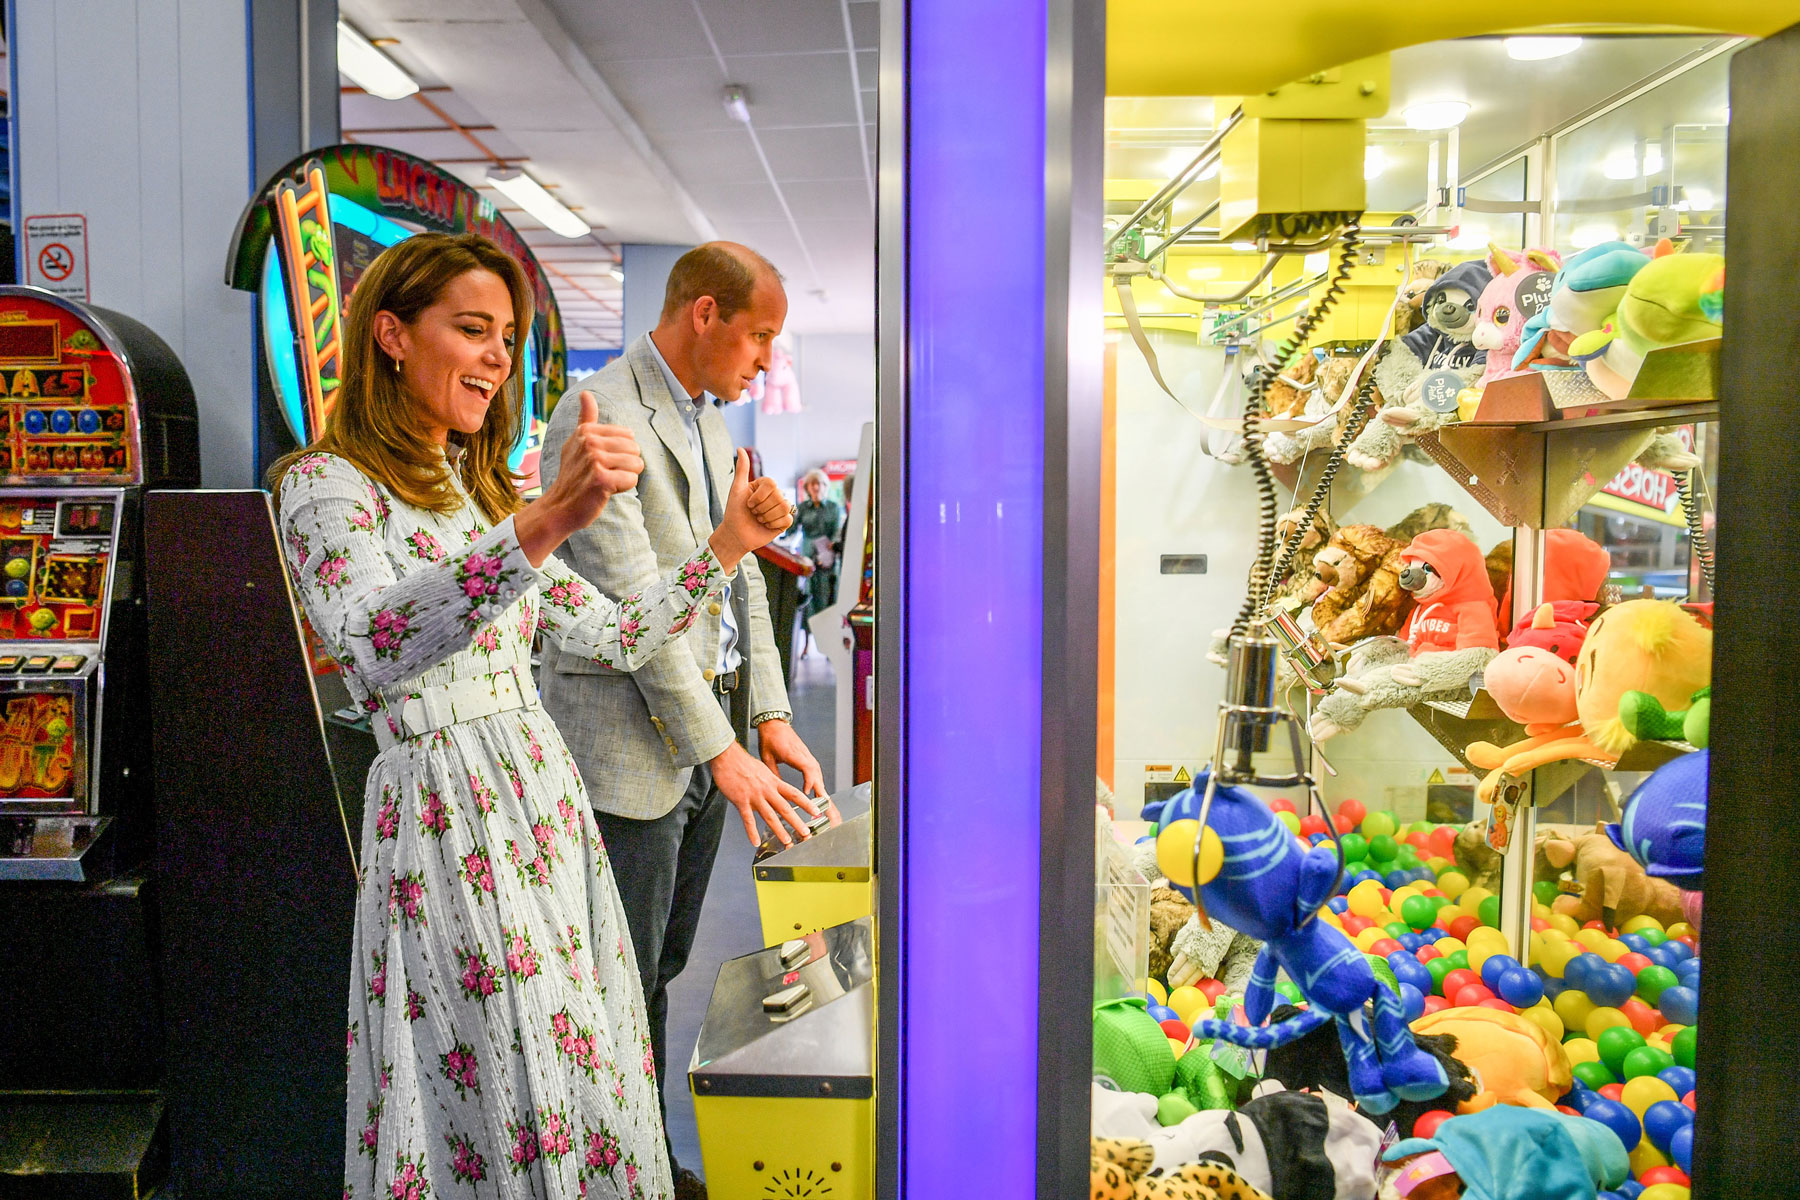 Kate Middleton cheers while operating an arcade claw machine